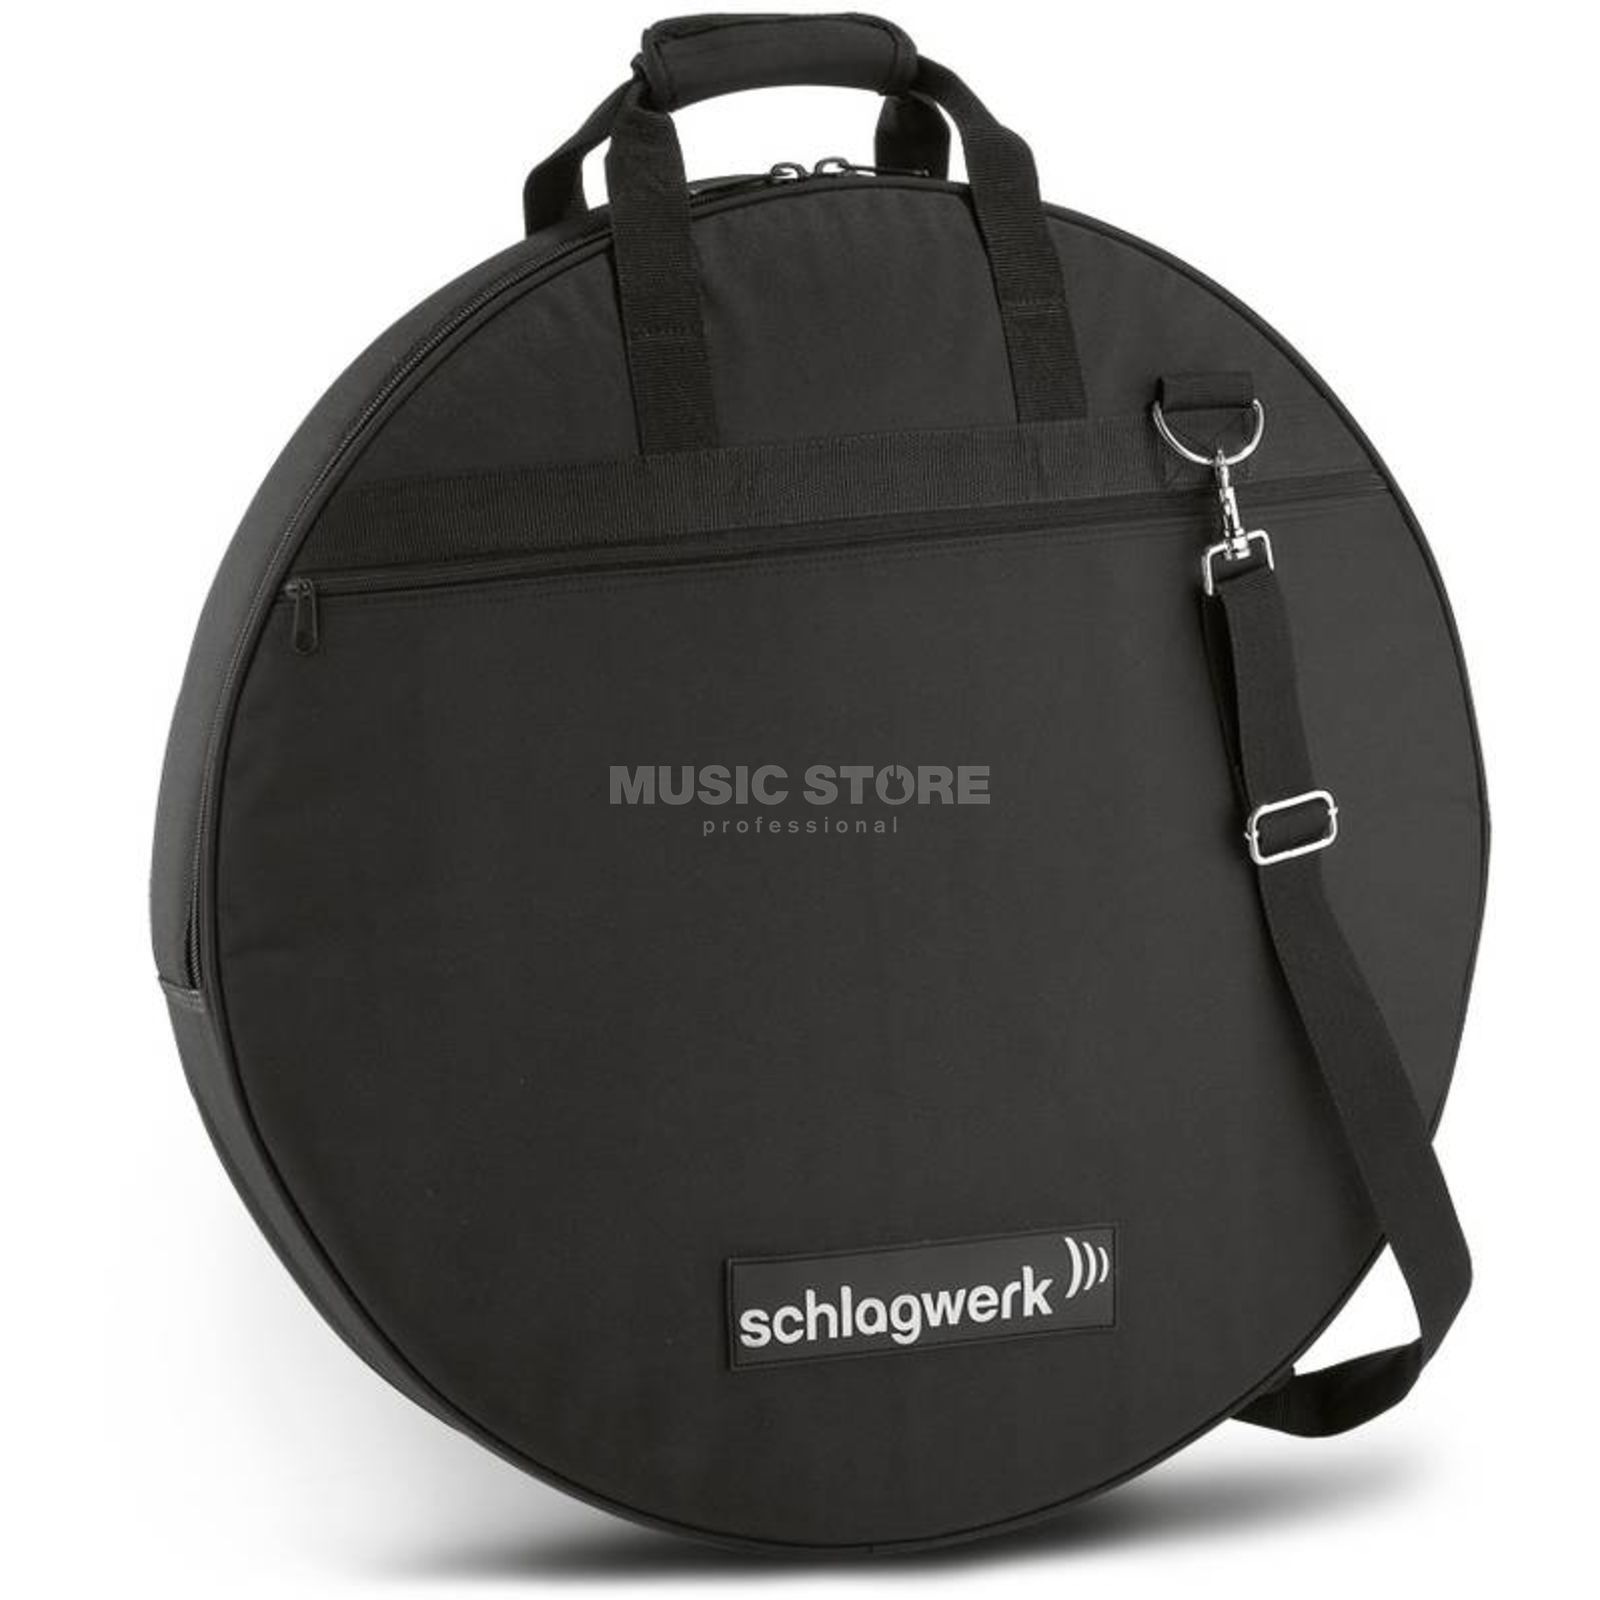 Schlagwerk Bag for Frame Drums TA 6, 50 - 60 cm Produktbild